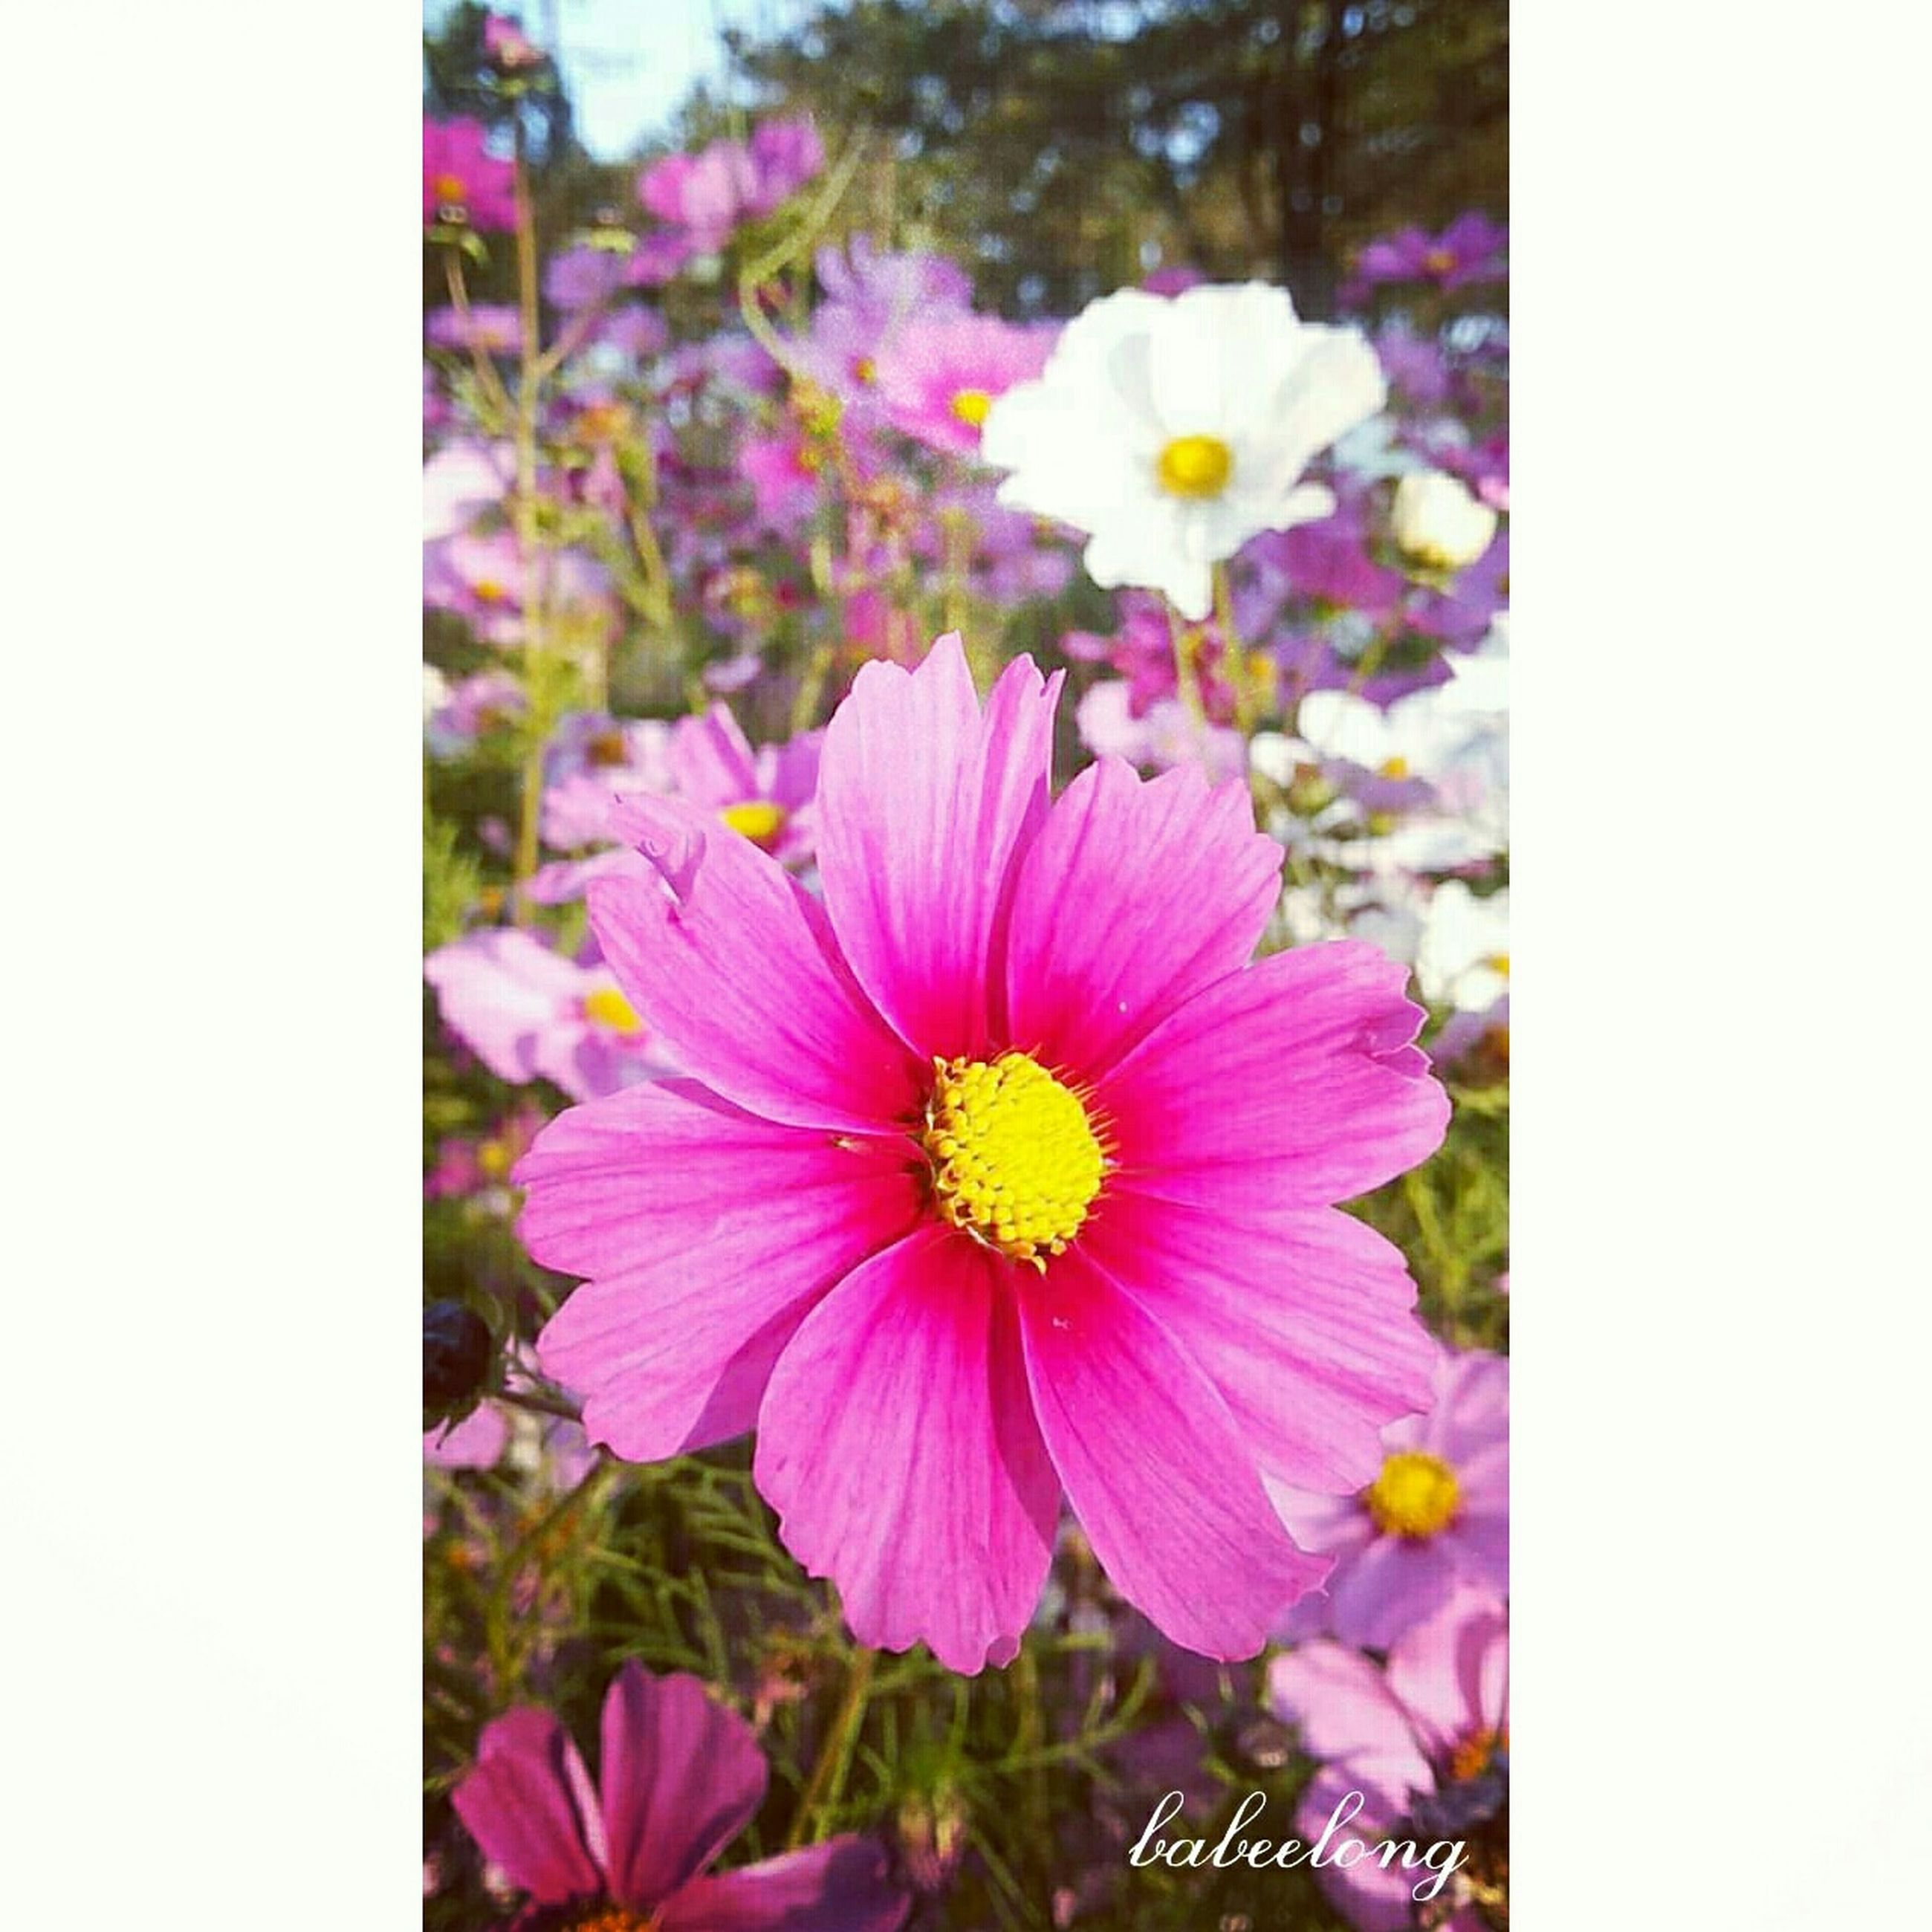 flower, freshness, petal, fragility, flower head, transfer print, beauty in nature, auto post production filter, growth, blooming, pollen, nature, close-up, pink color, focus on foreground, purple, in bloom, yellow, blossom, plant